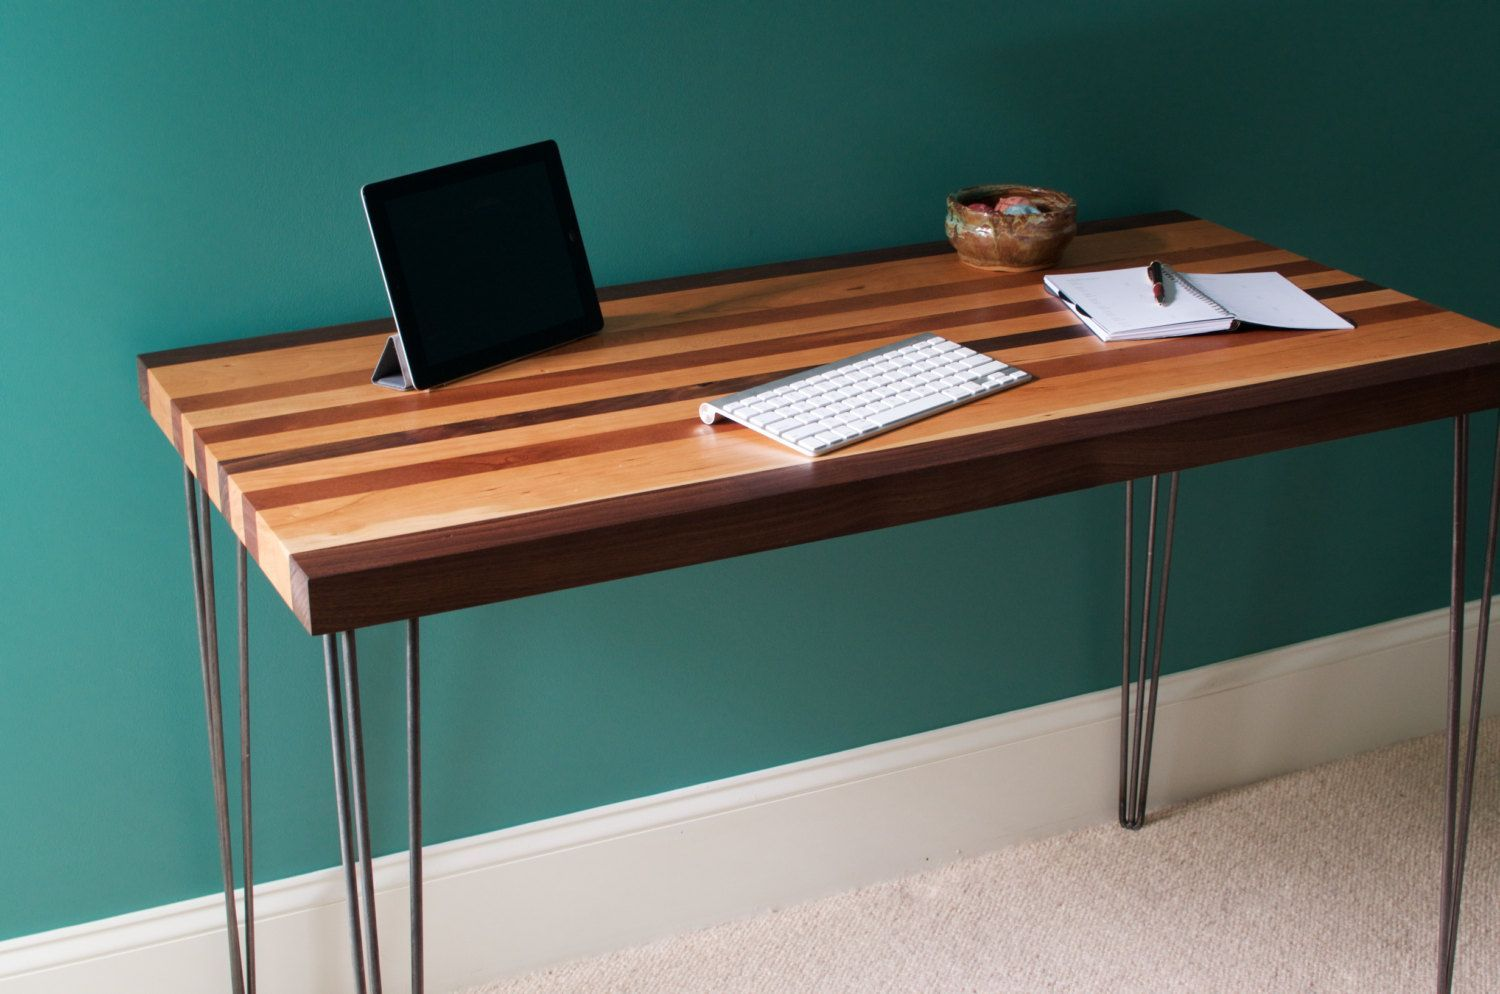 Buy hand crafted mid century modern desk featuring a maplemahogany and walnut wood top